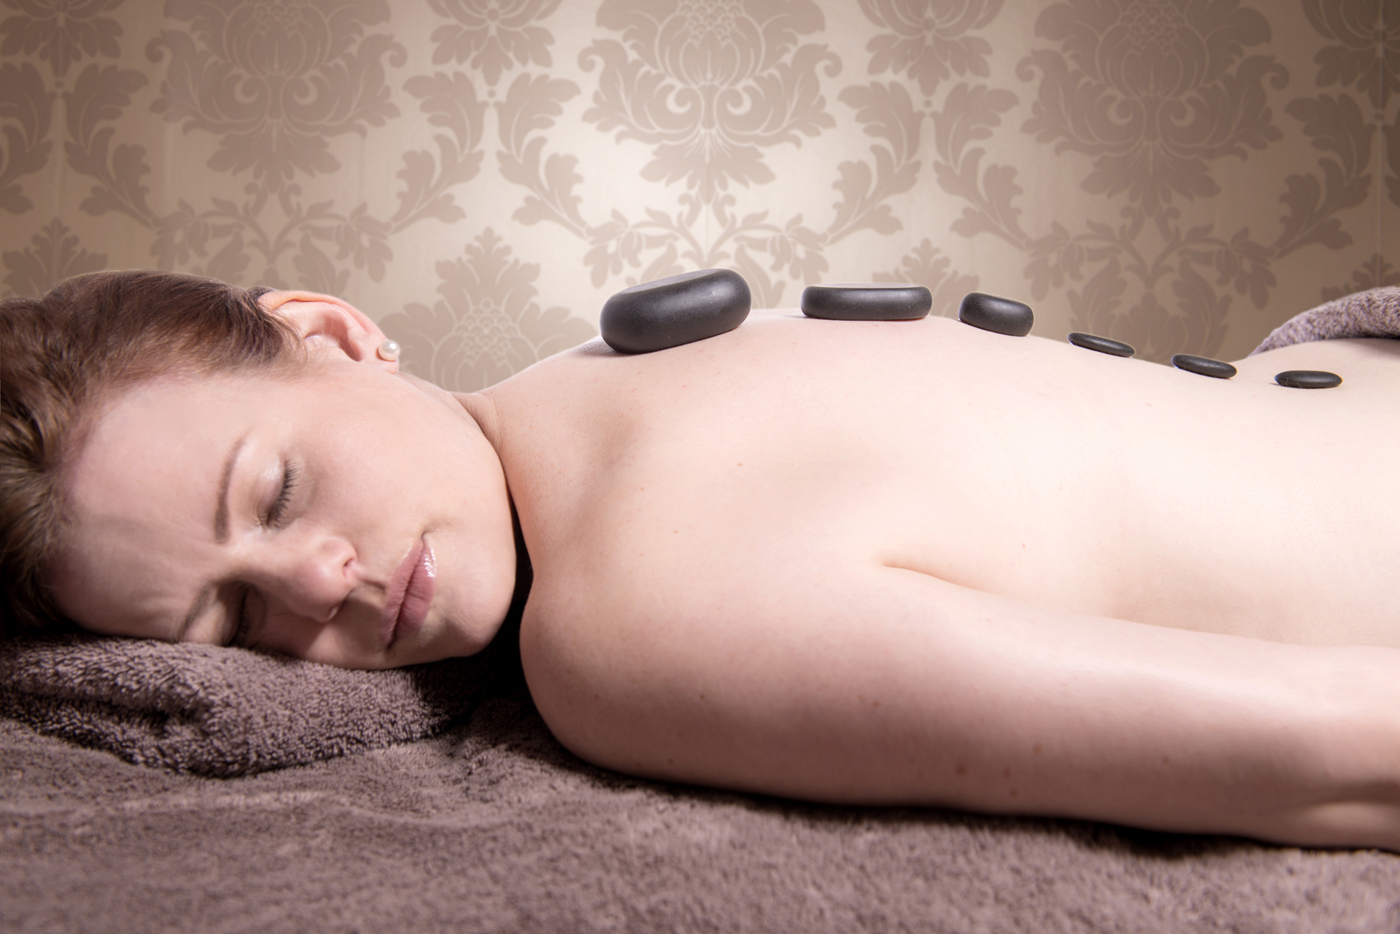 Hot Stone Massage - A deep healing and relaxing massage using heated stones applied directly to the skin to melt away tension and ease aching muscles